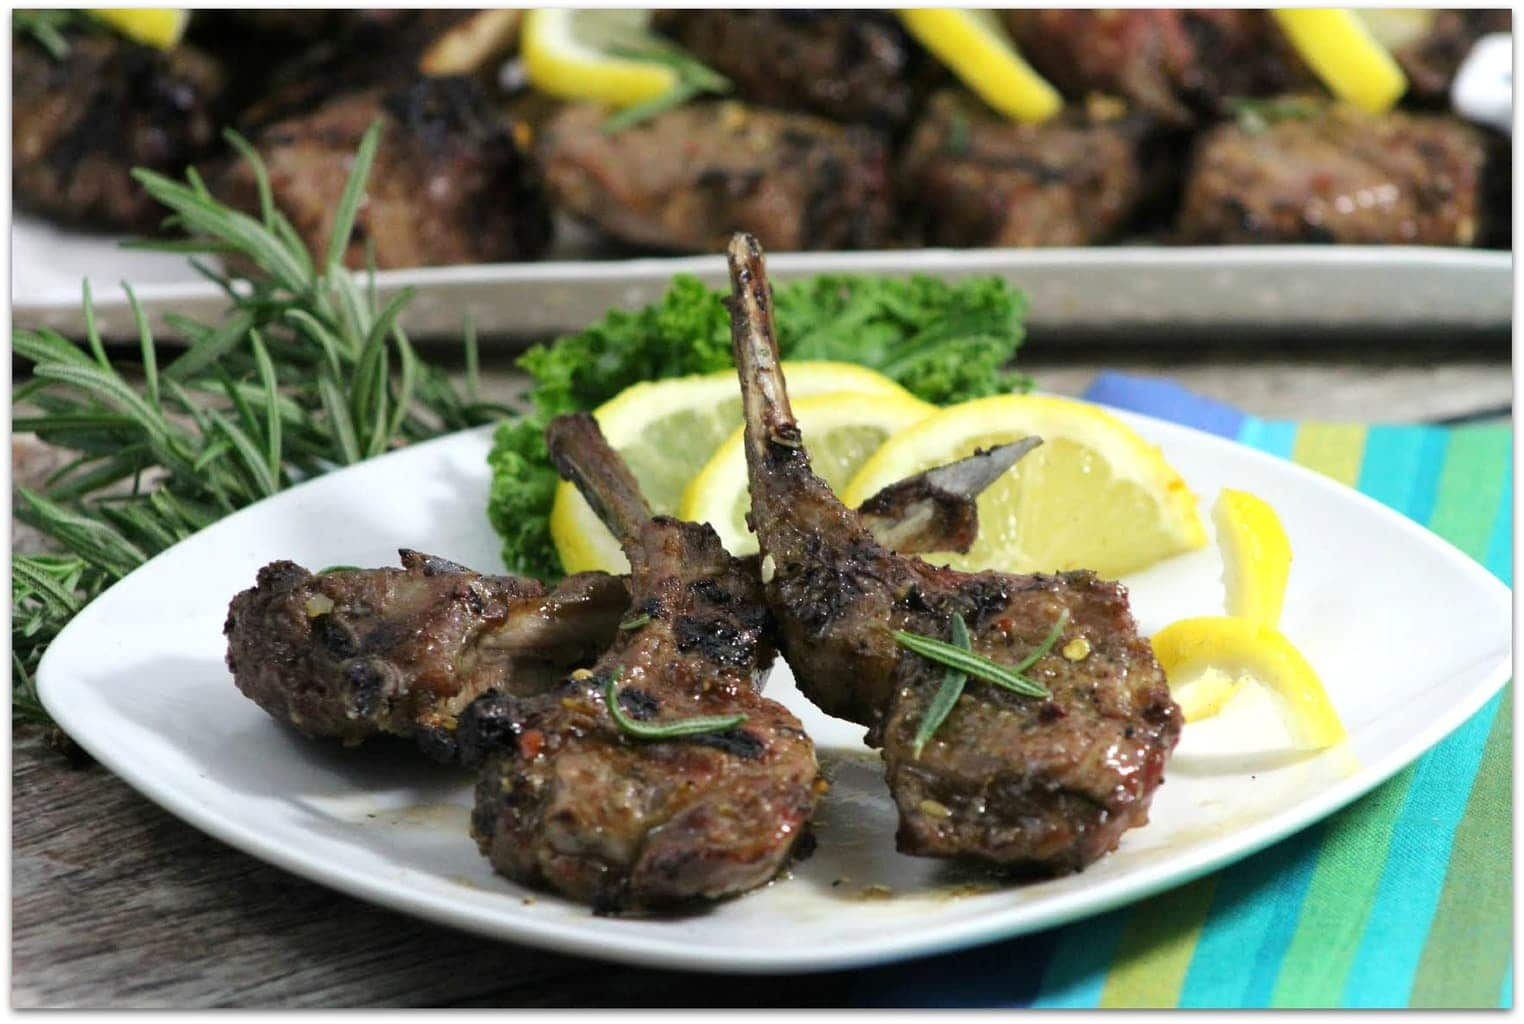 Lamb chops grilled on a white plate with lemons.